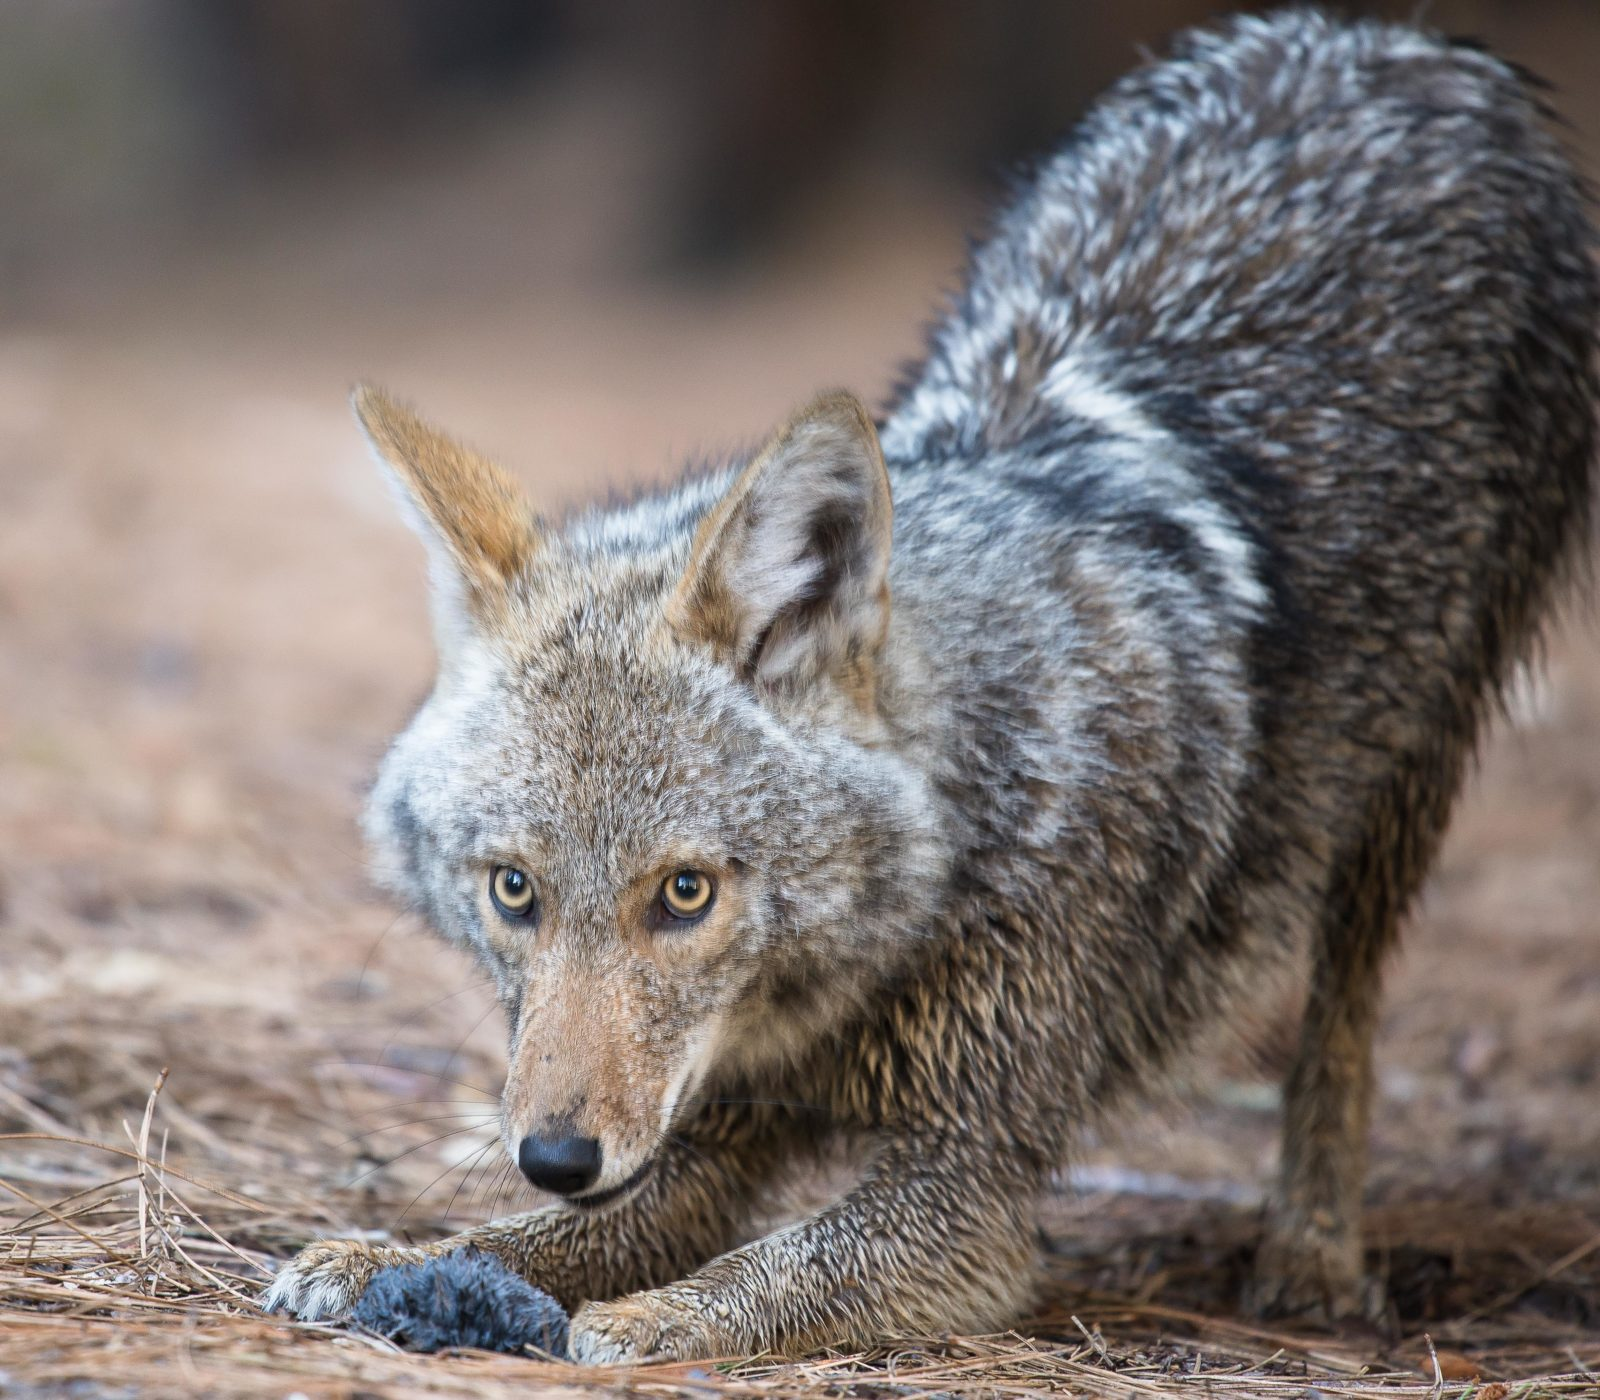 Coyote morning play